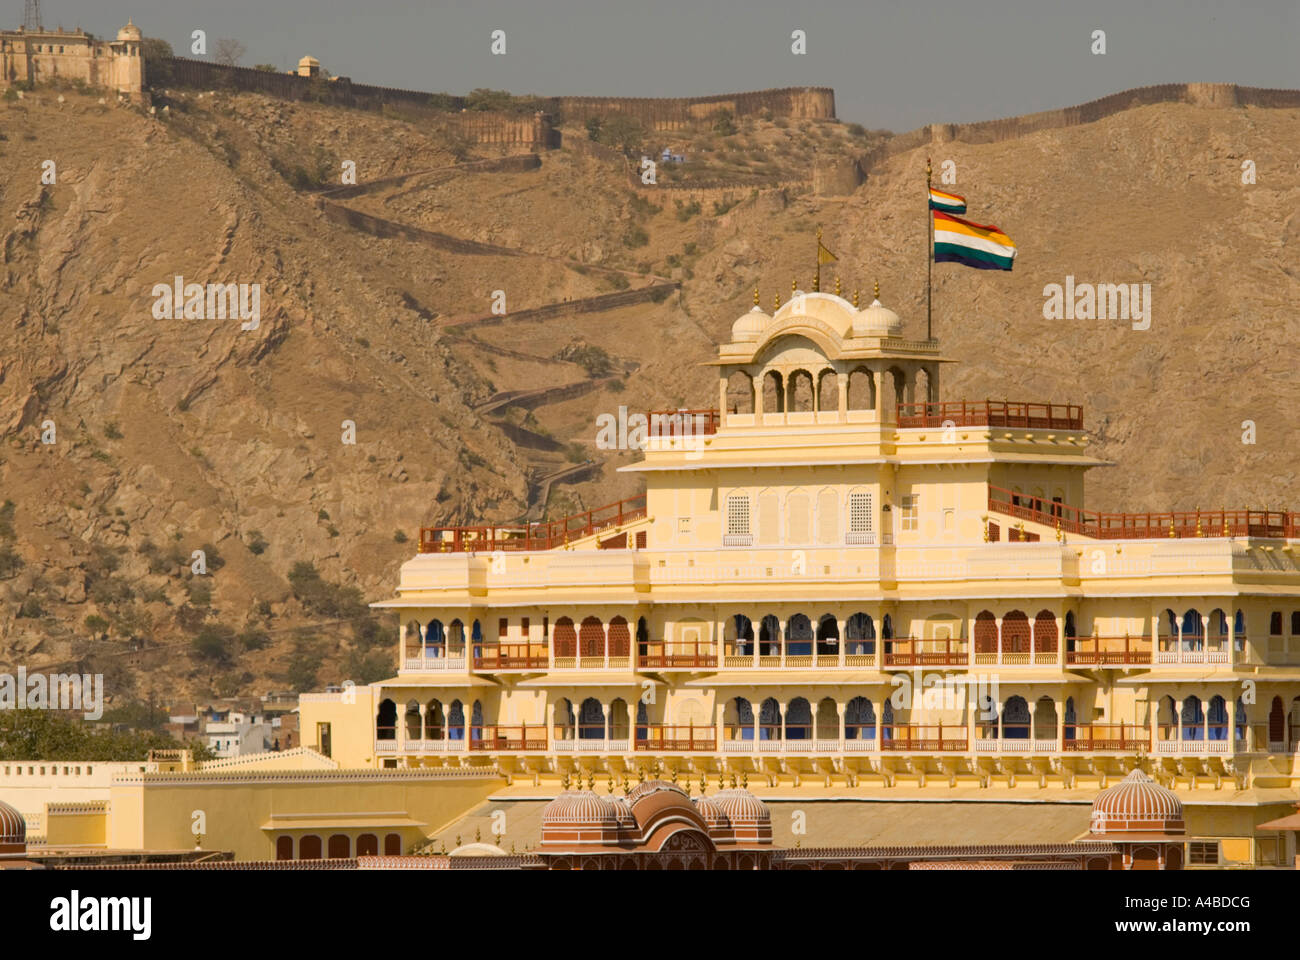 Stock image of Jaipur City Palace or Chandra Mahal or Moon Palace - Stock Image